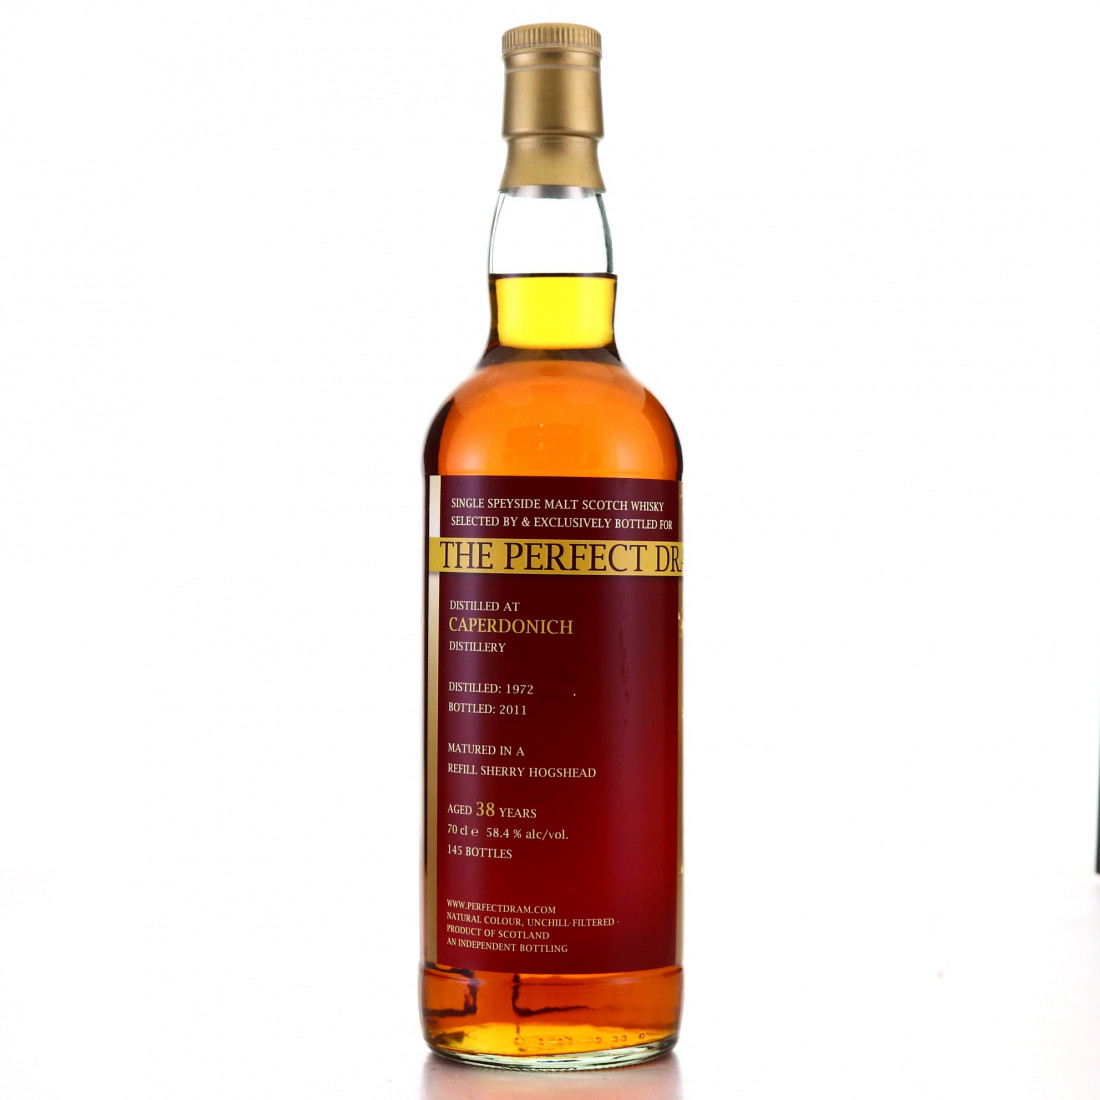 Caperdonich 1972 Whisky Agency 38 Year Old Perfect Dram